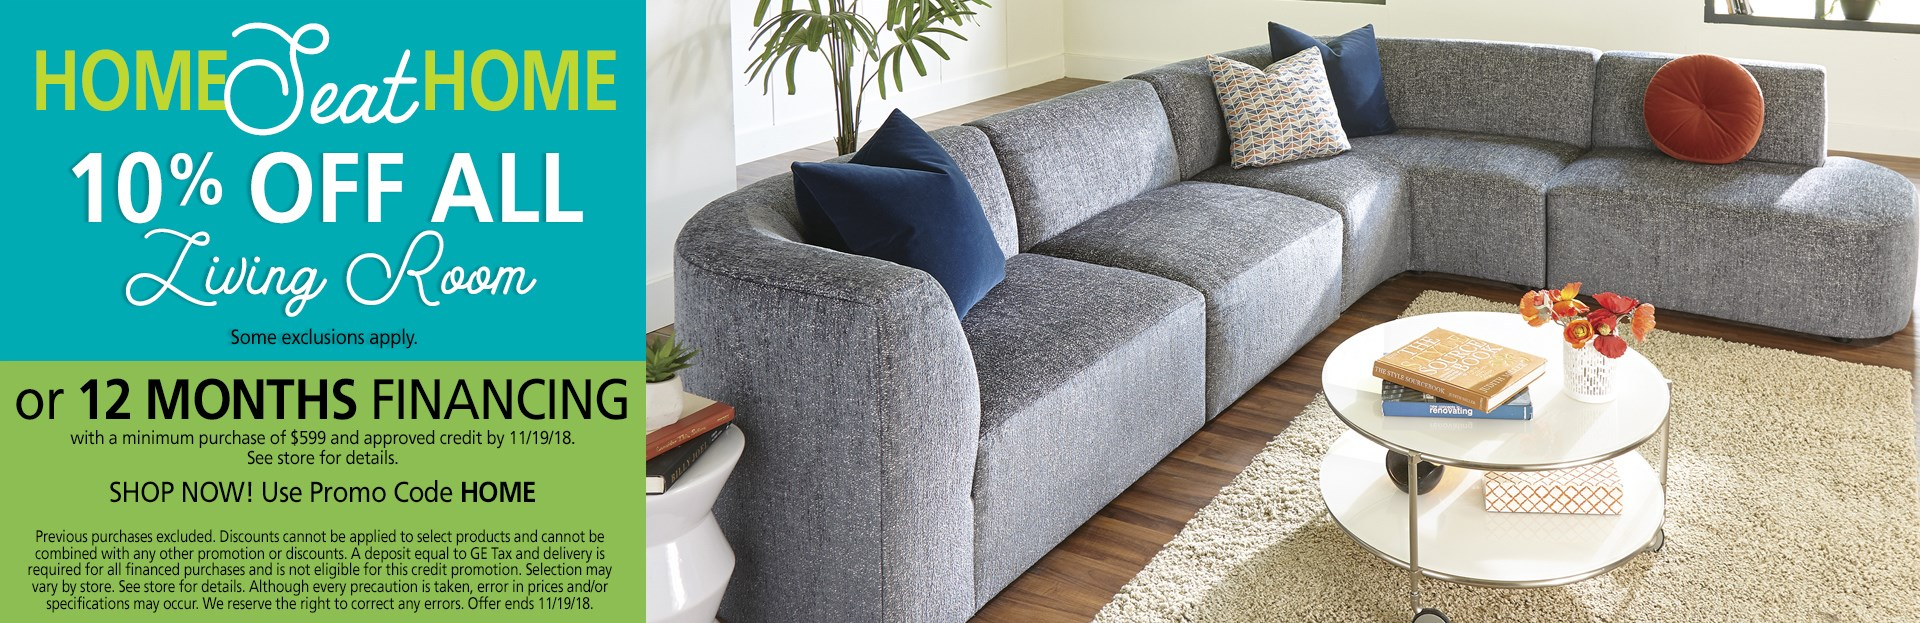 10% off all living room; financing available. See store for details.